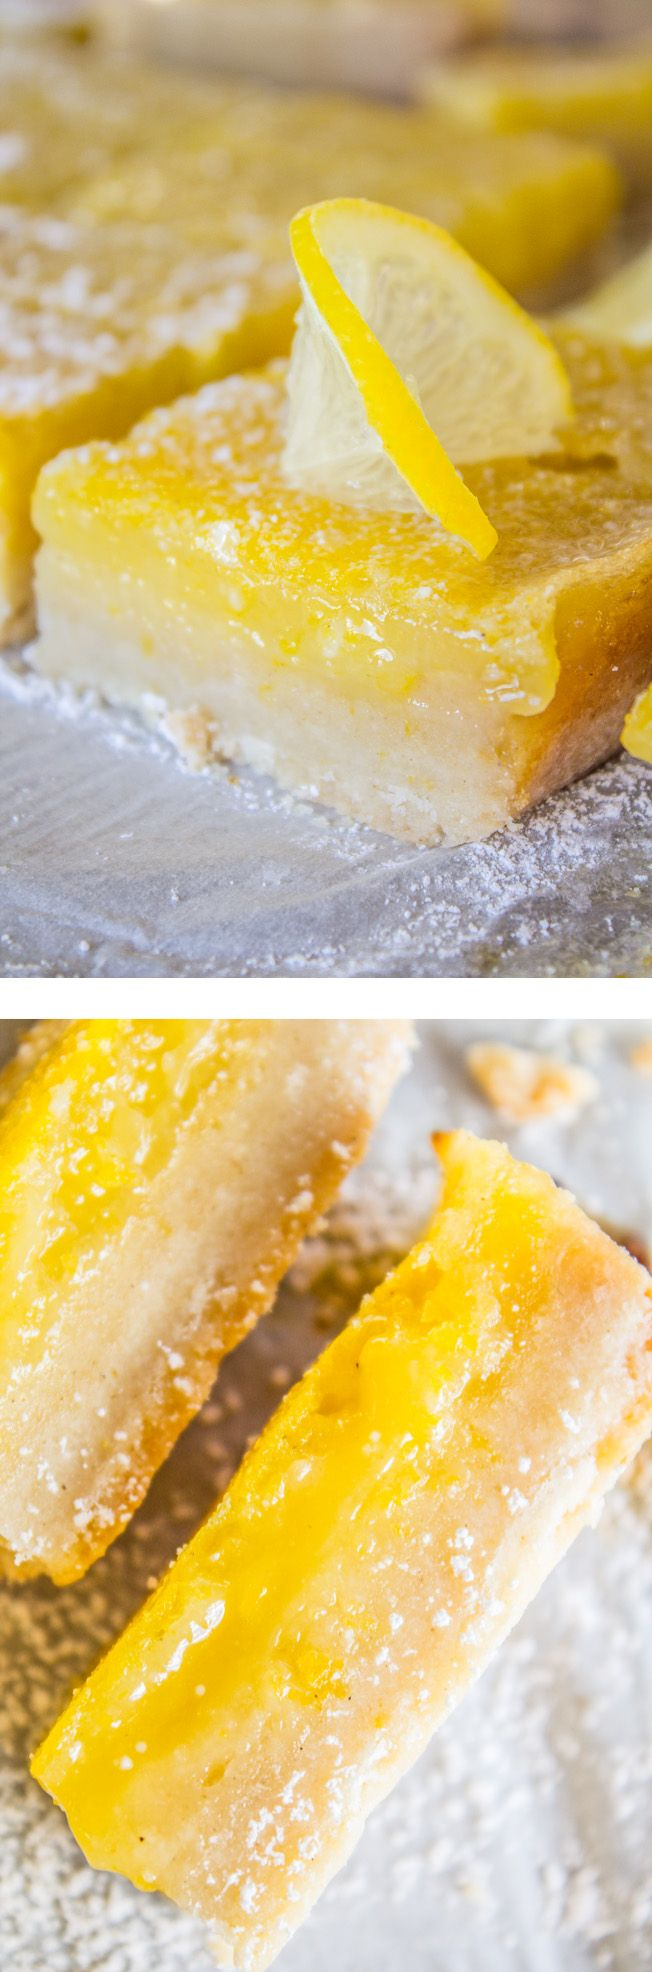 The Best Lemon Bars FoodBlogs.com